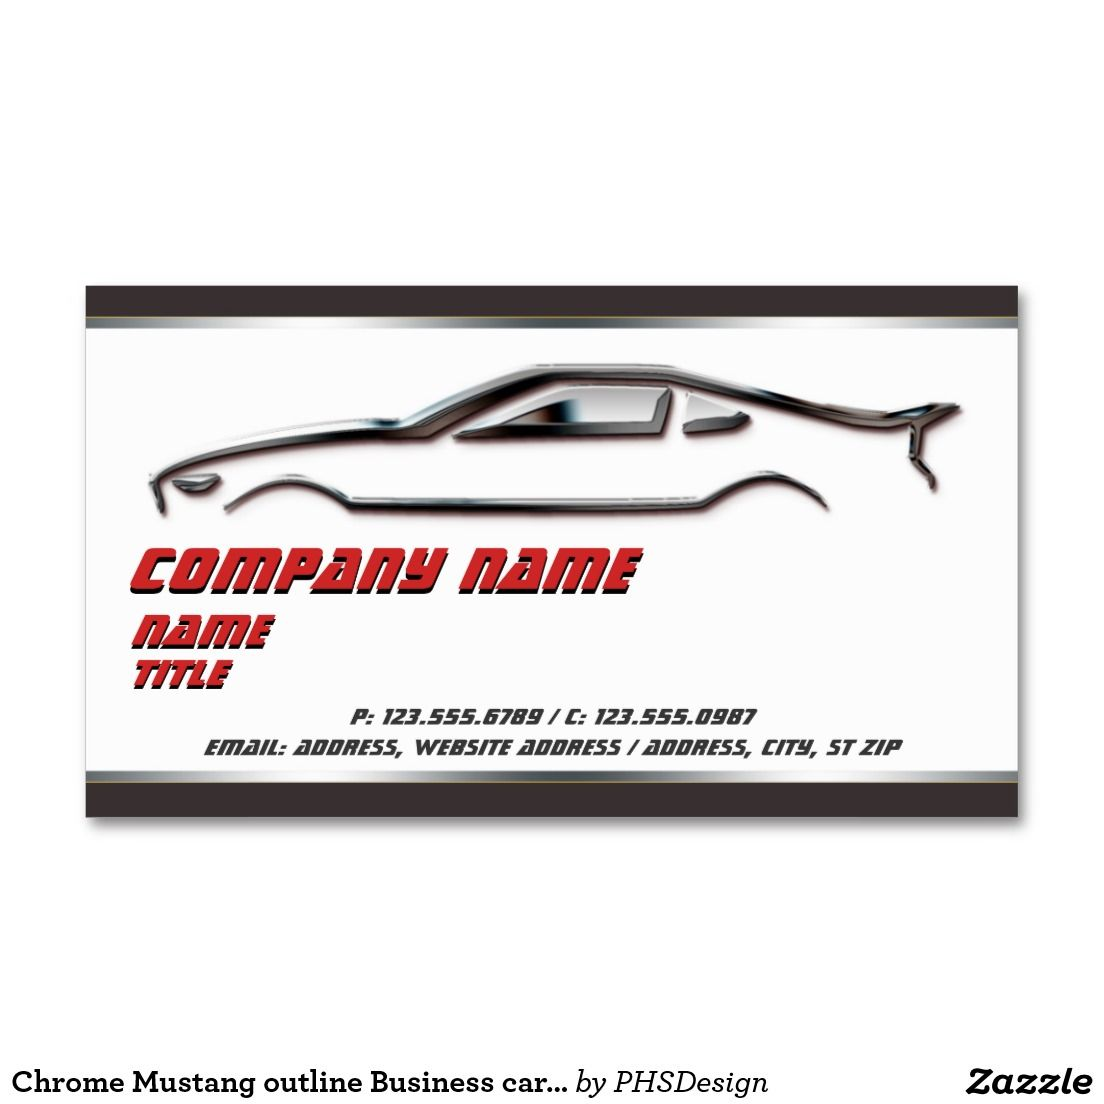 Chrome Mustang outline Business cards | Business Card Templates ...